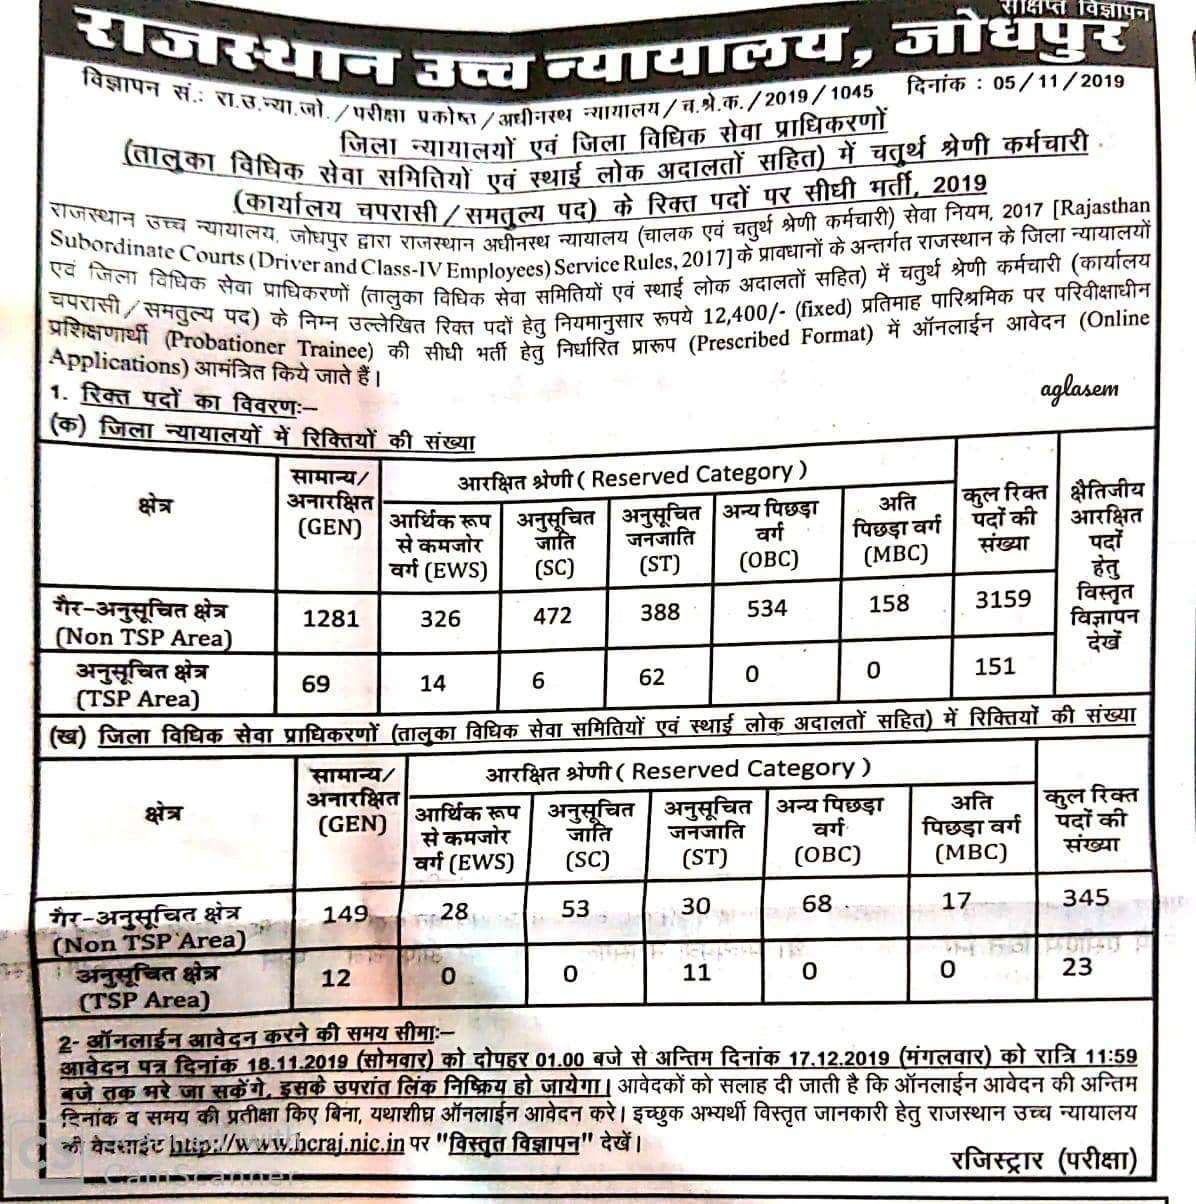 Rajasthan High Court 4th Class Recruitment 2019 Notification Out, For 3678 Vacancies